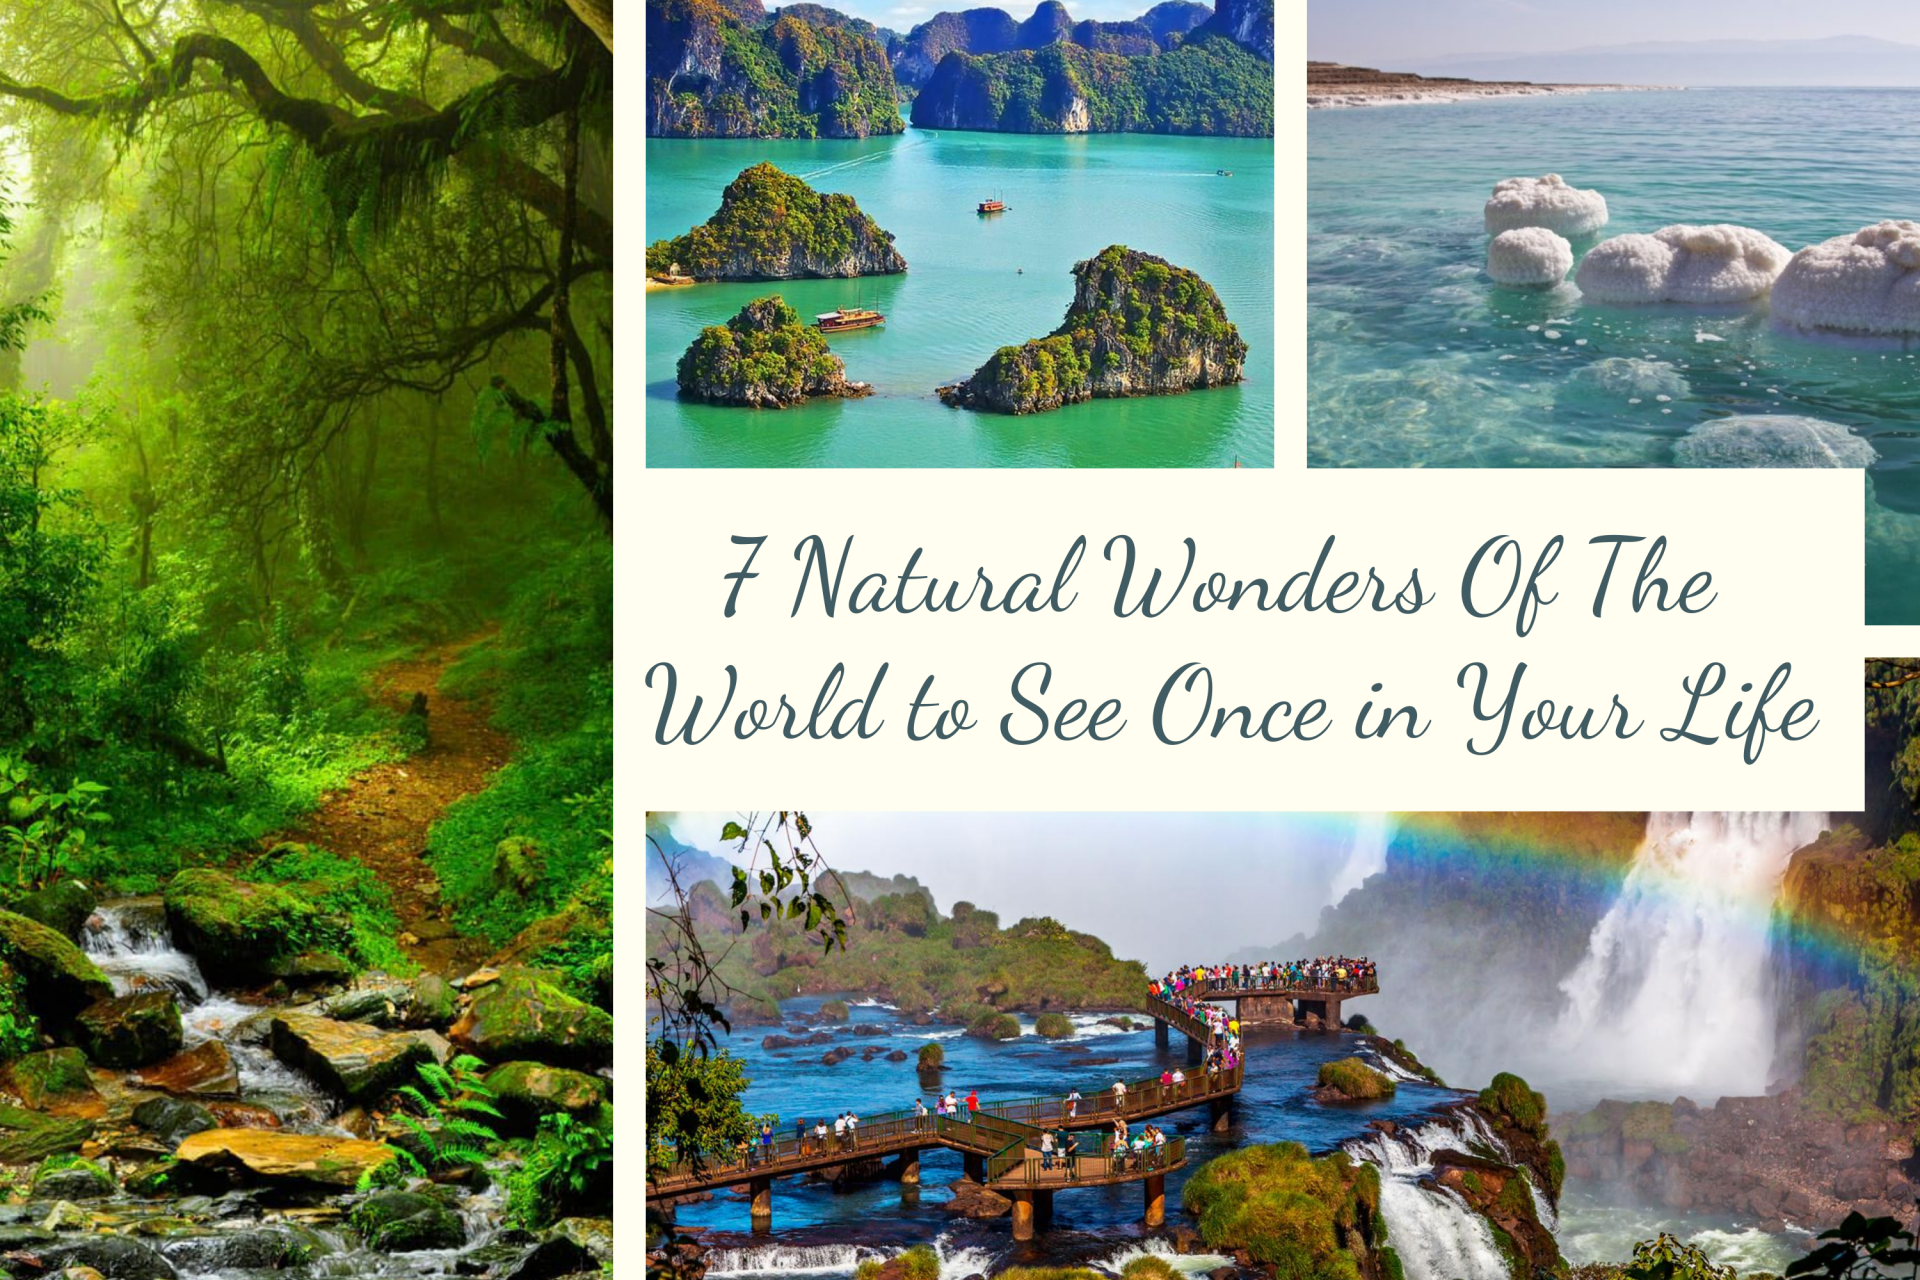 7 Natural Wonders Of The World to See Once in Your Life